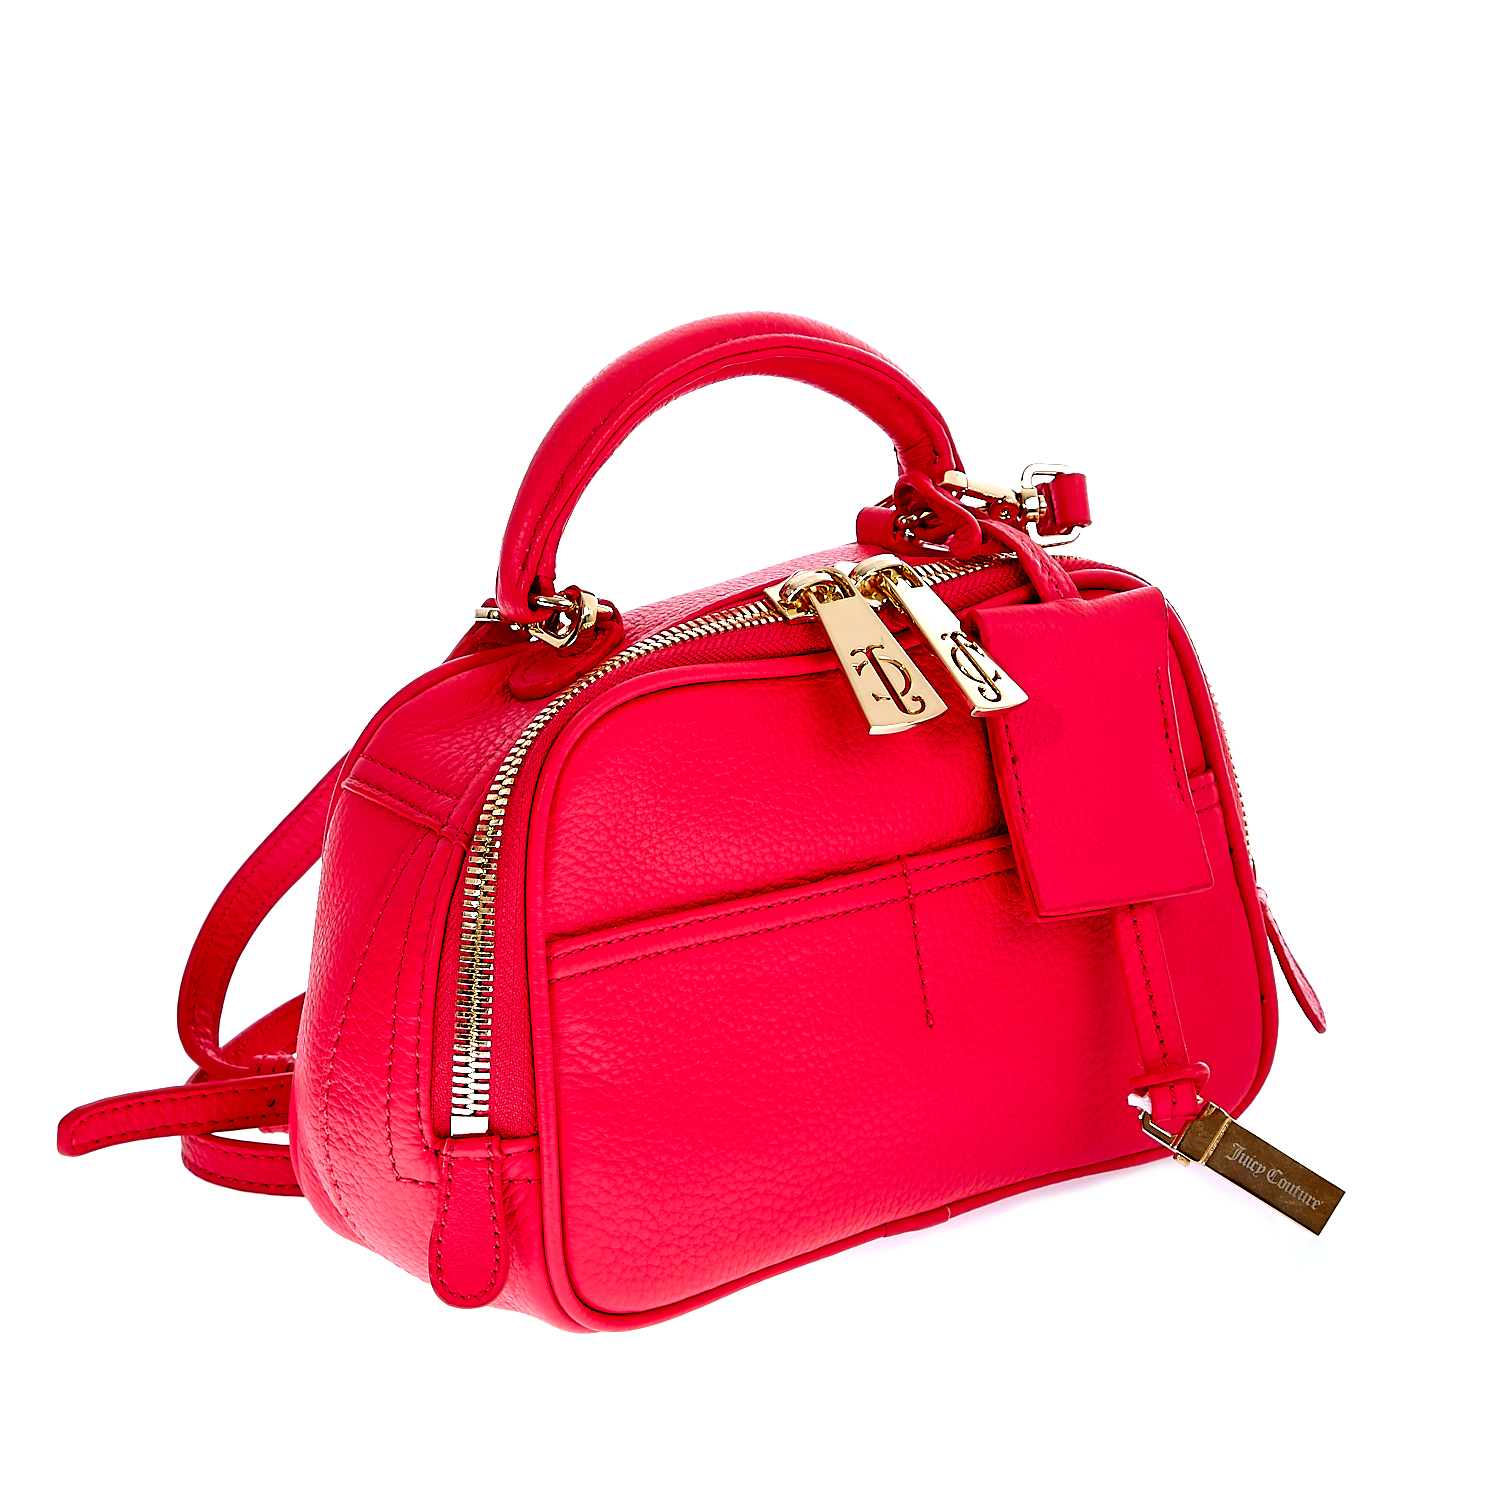 JUICY COUTURE – Γυναικεία τσάντα Juicy Couture φούξια 1441254.0-004H